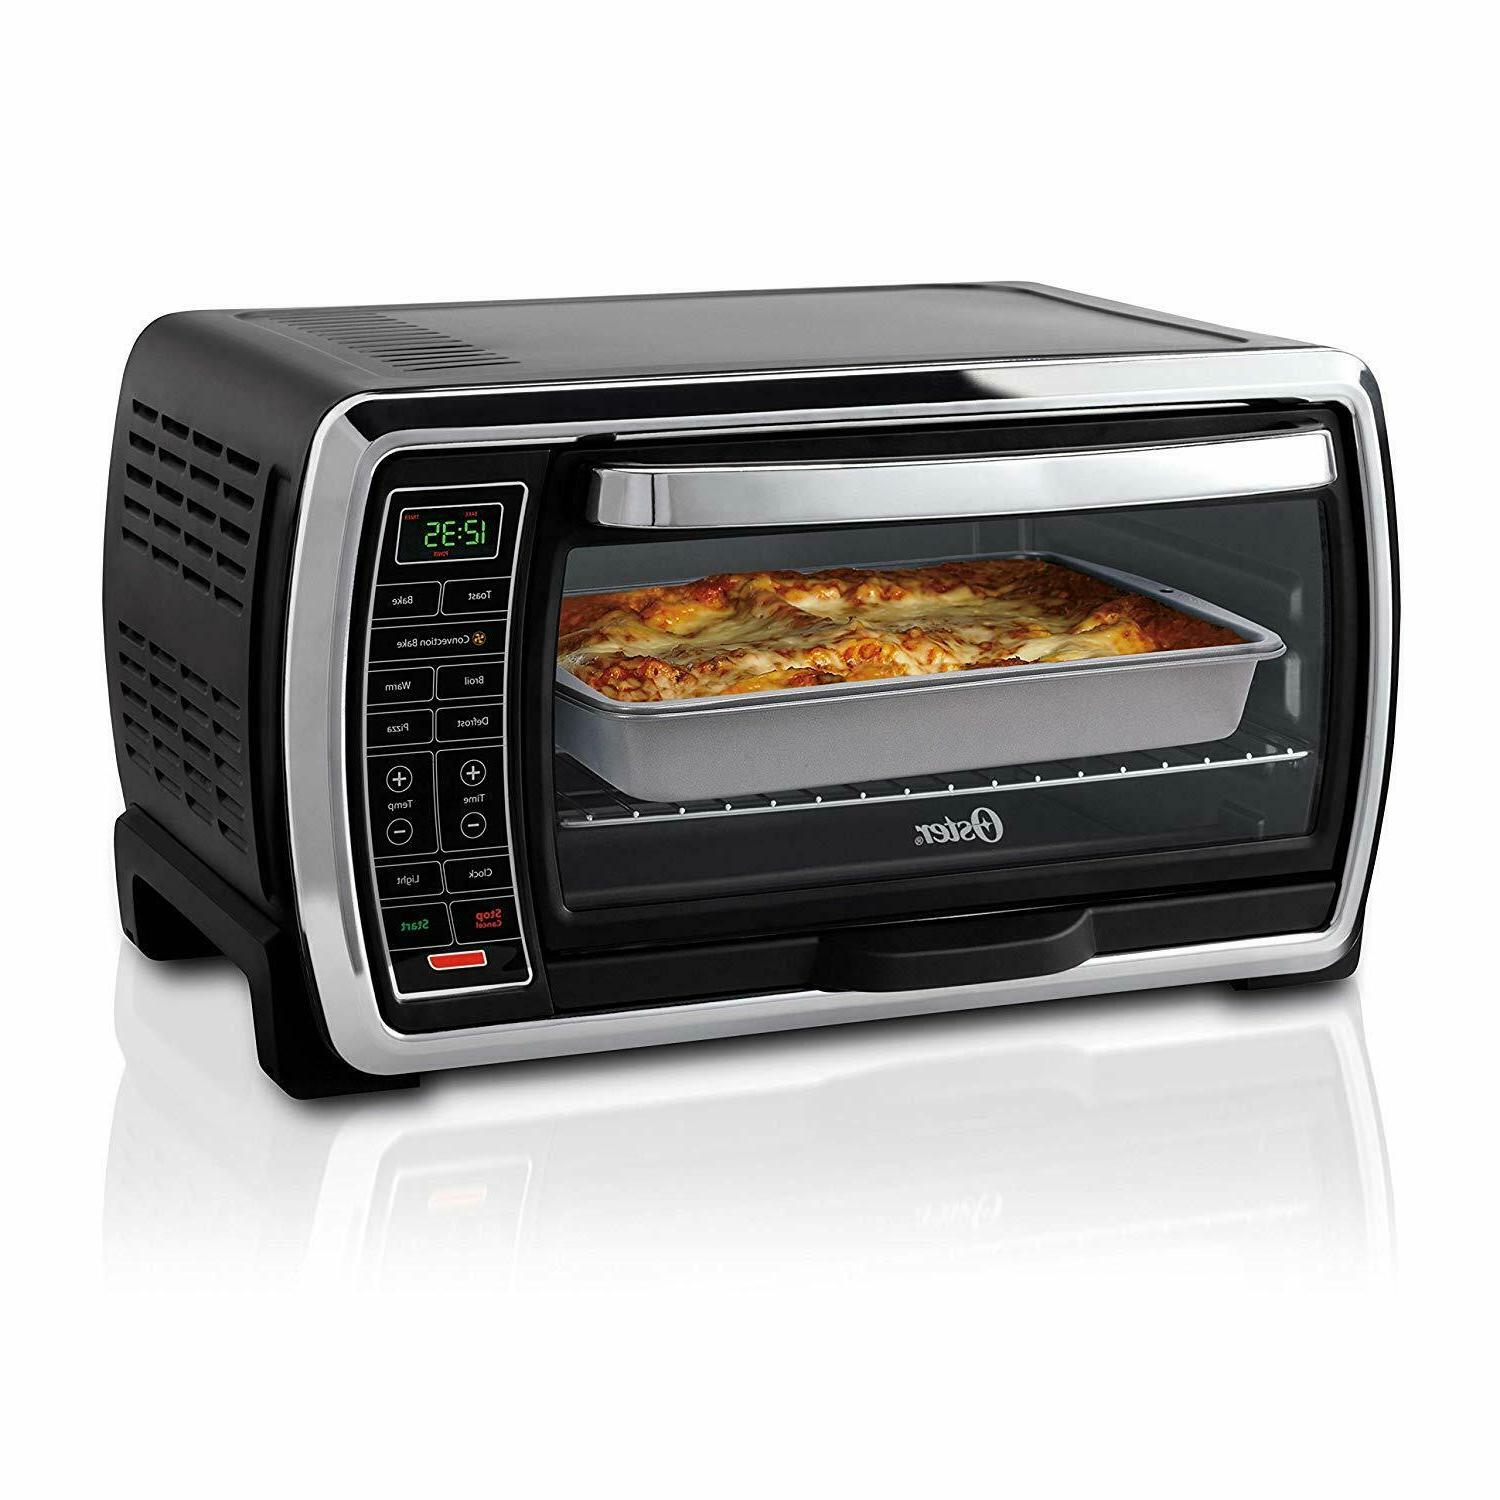 large digital countertop convection toaster oven black